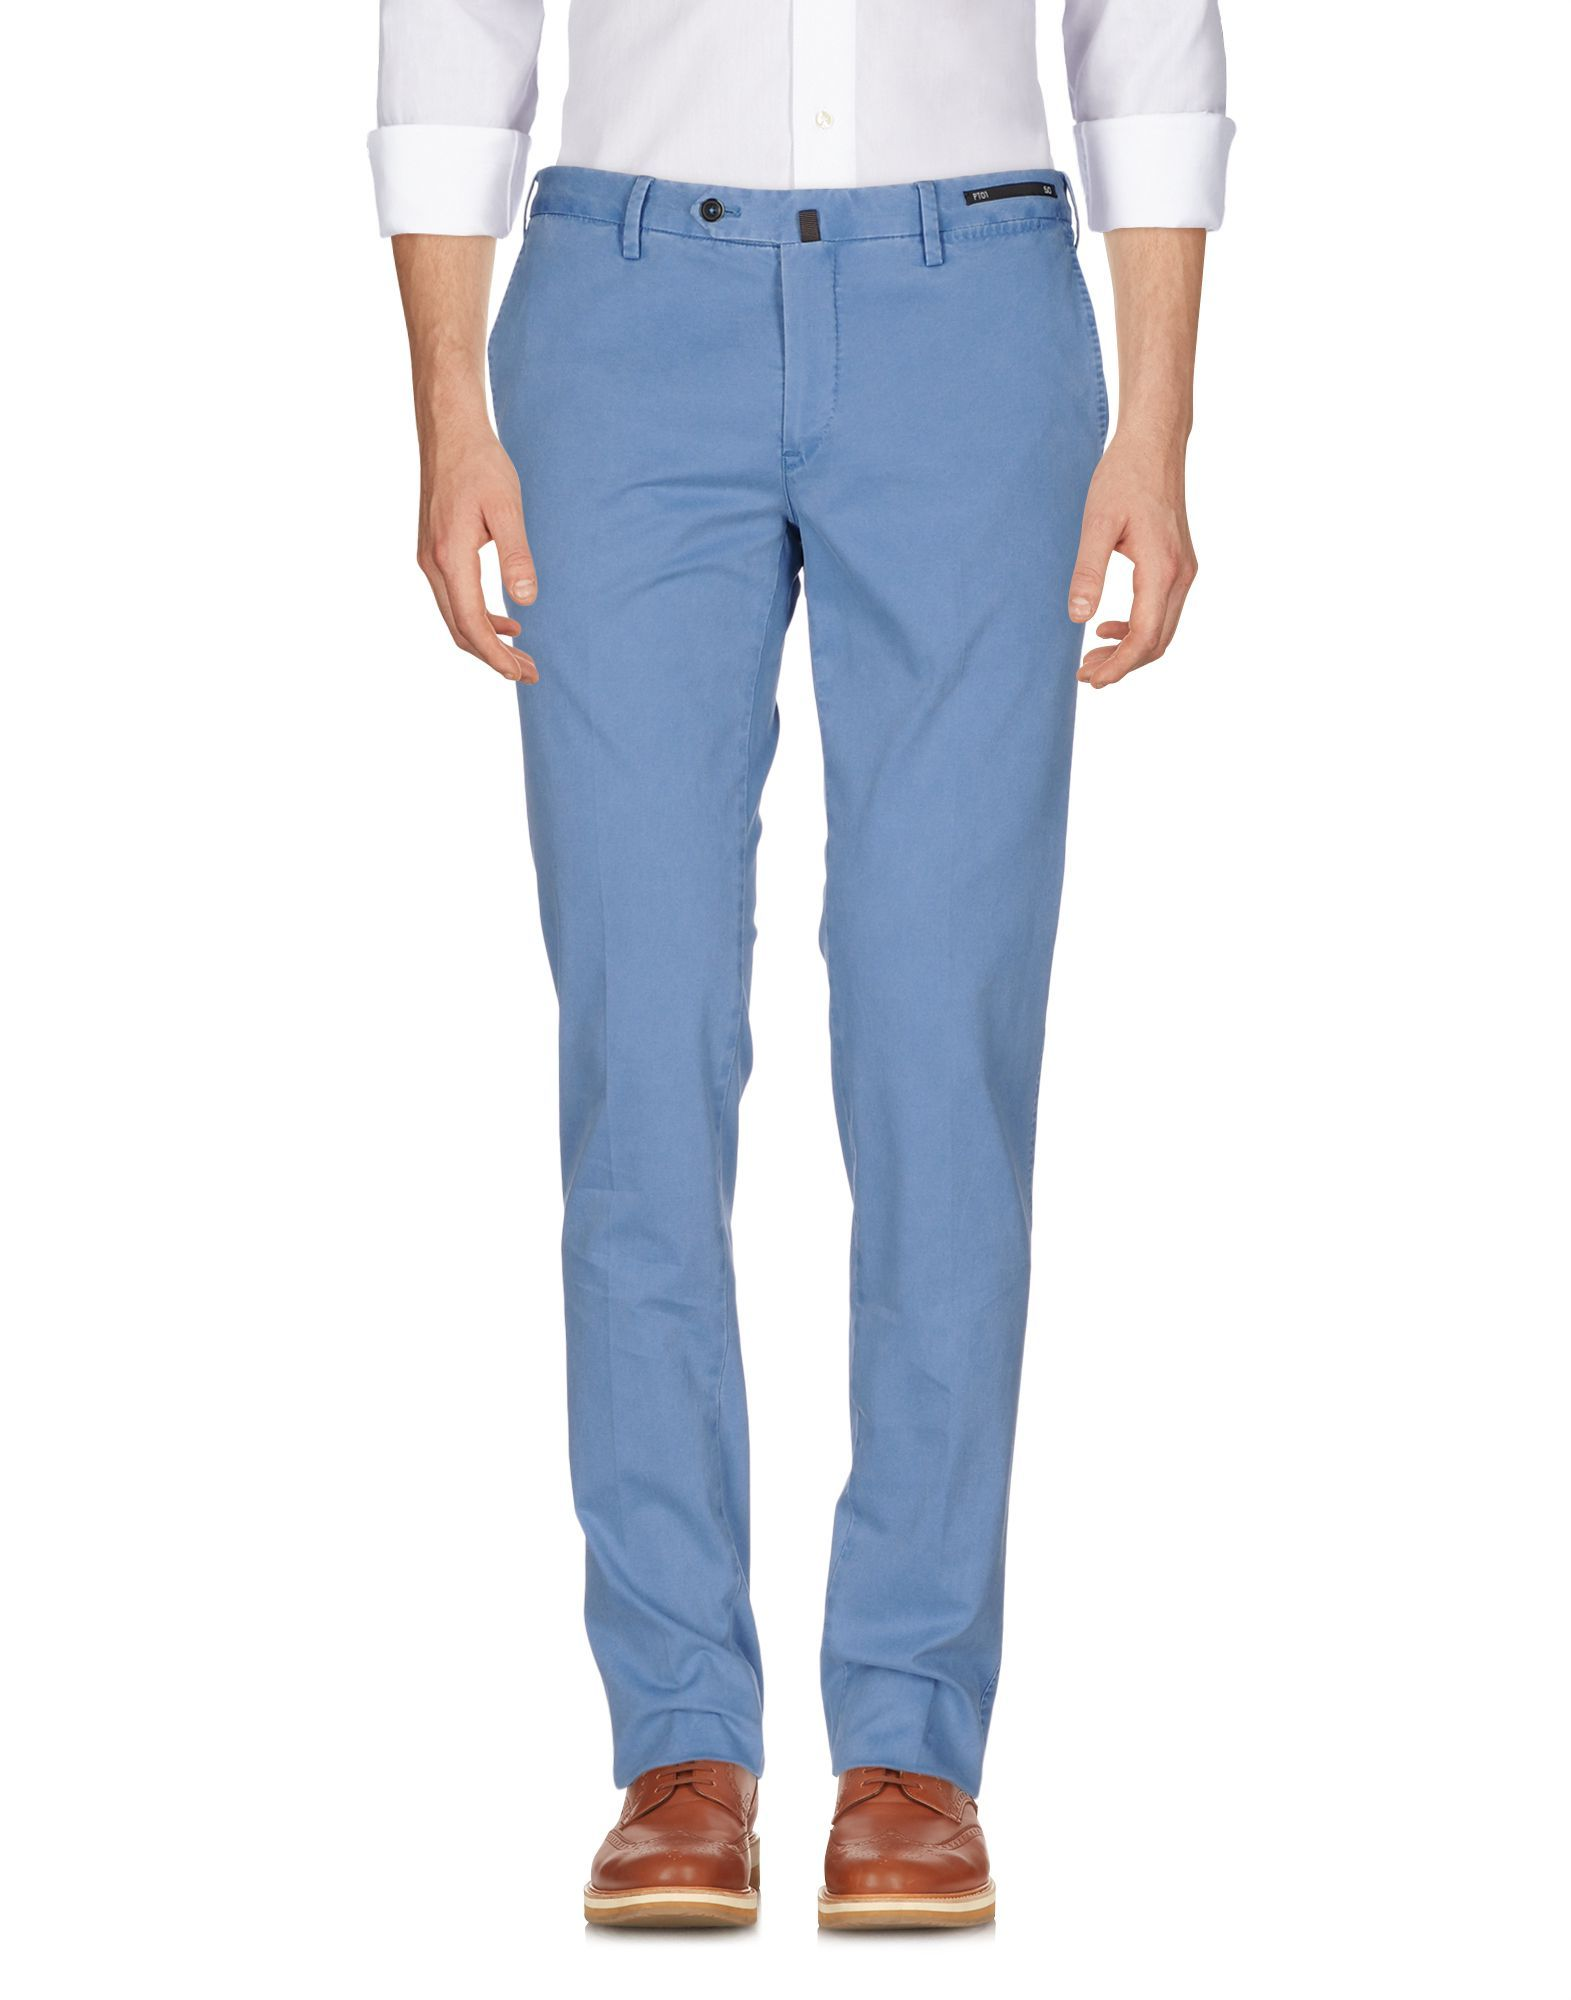 TROUSERS Massimo Rebecchi Blue Man Cotton